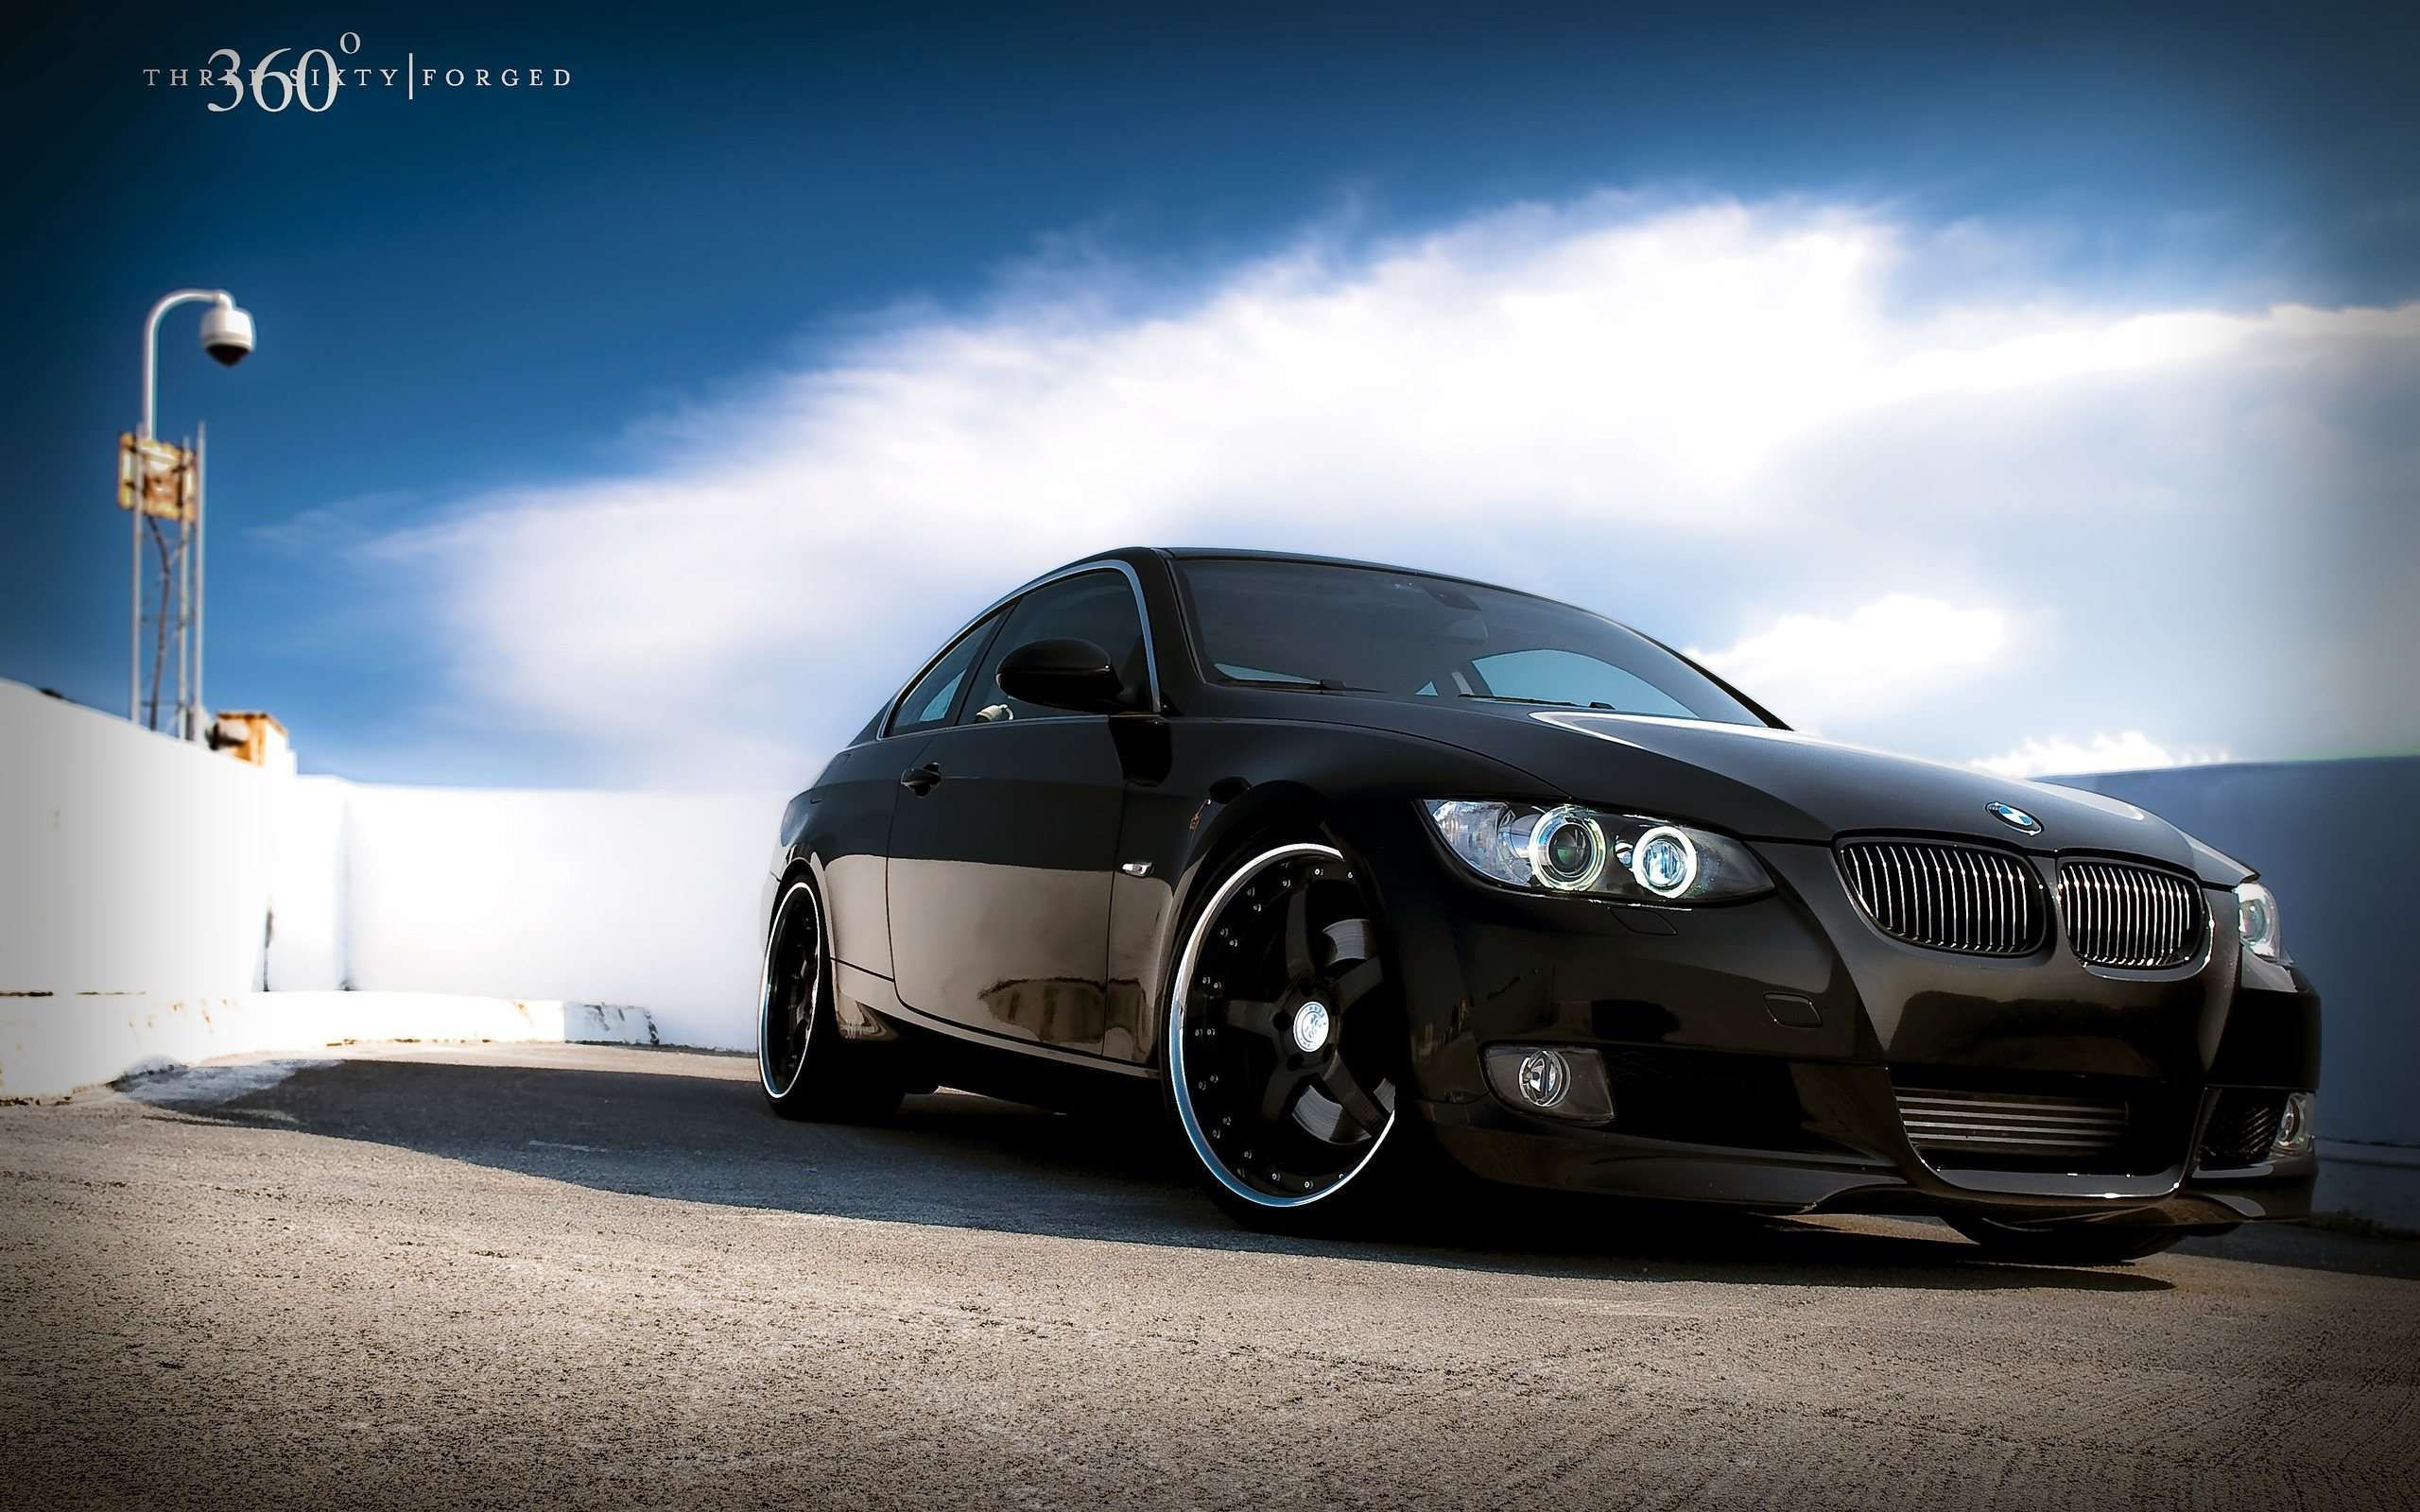 Black Bmw 335i 360 Forged Hd Widescreen Wallpaper Projects To Try